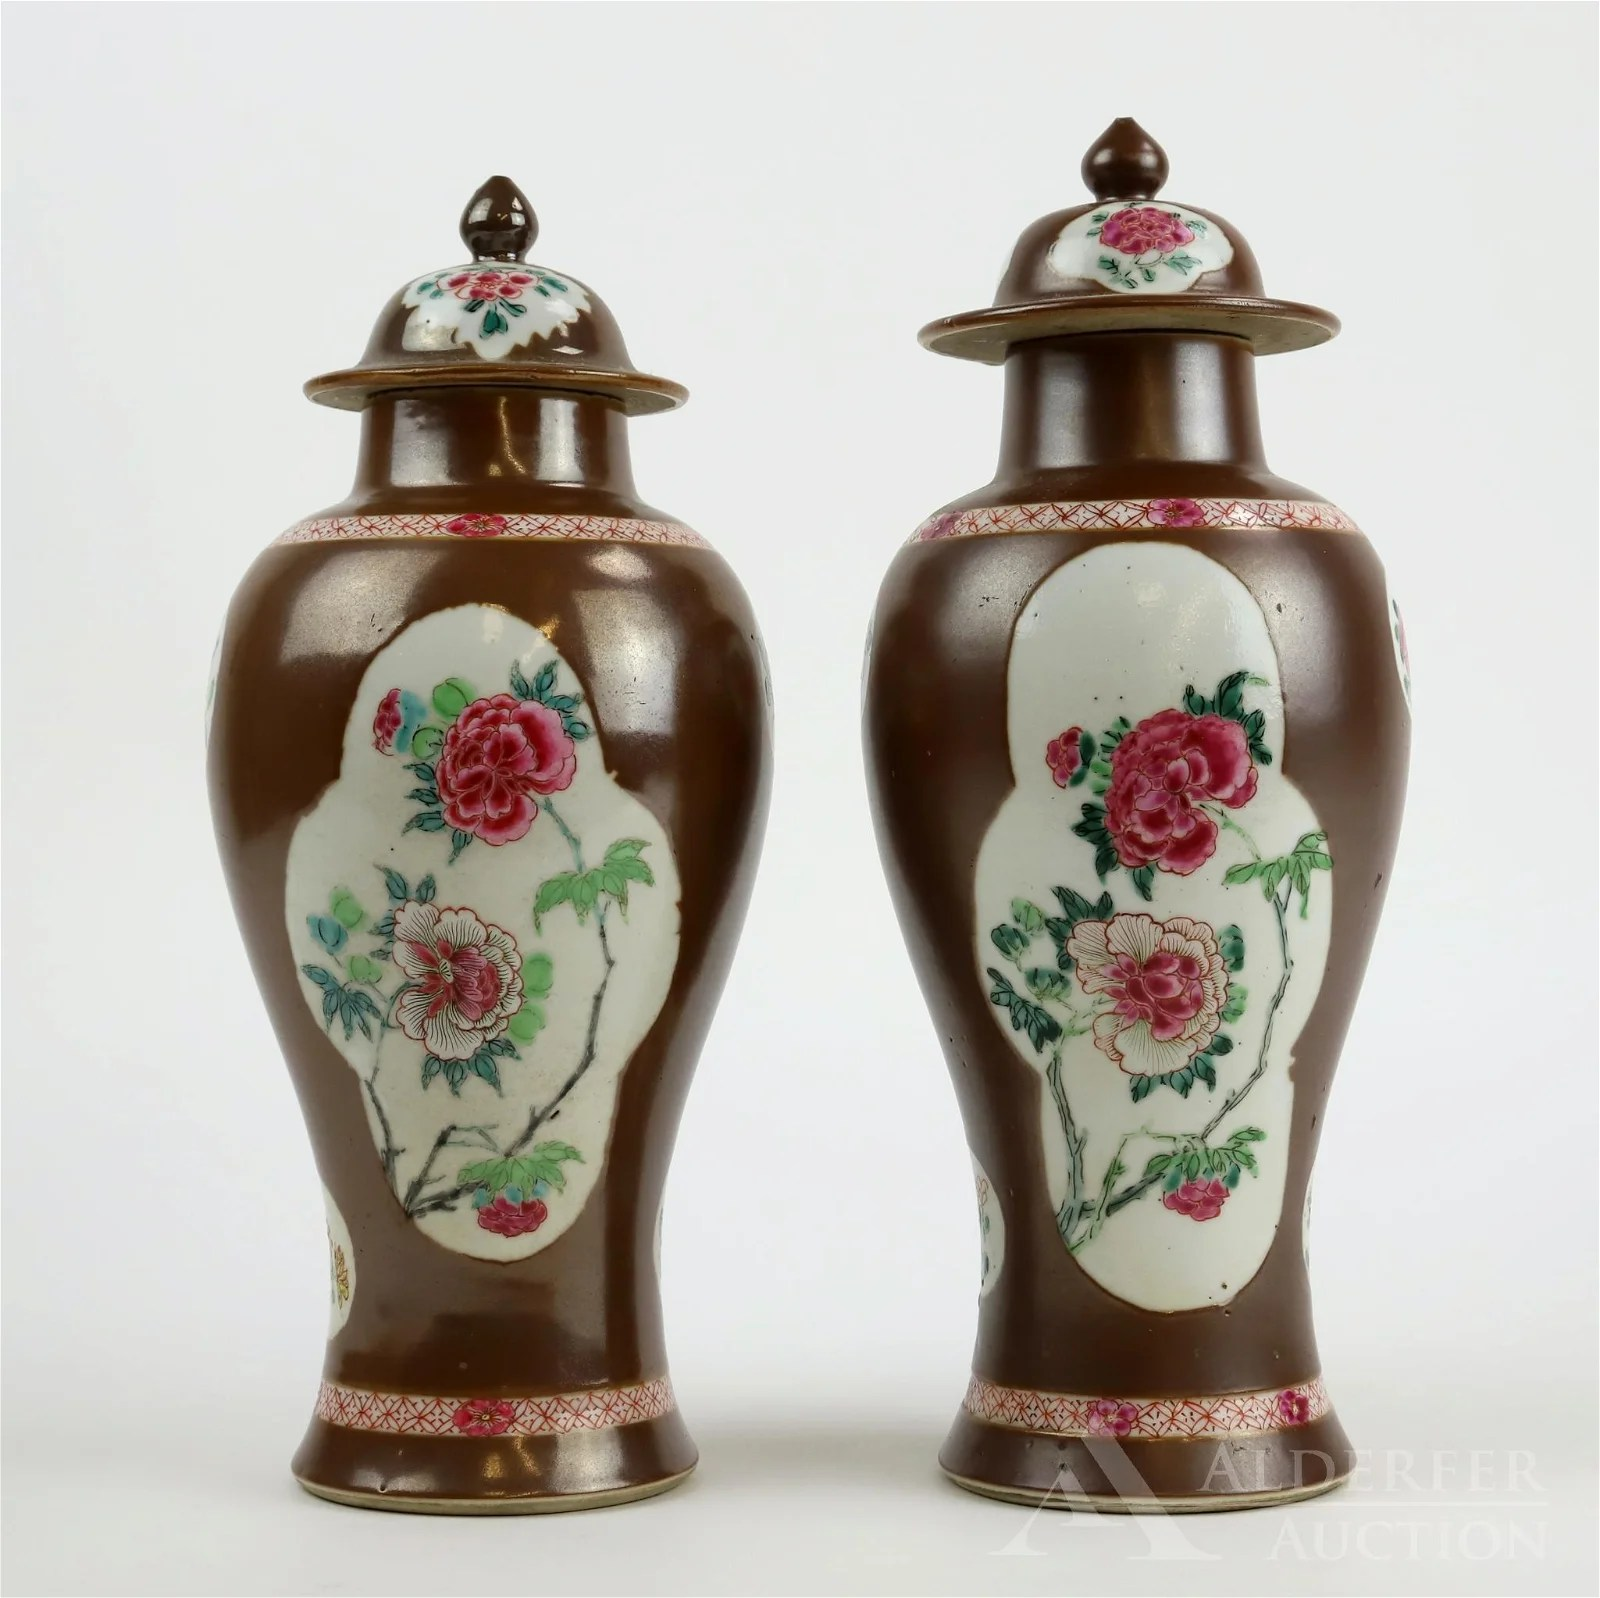 Chinese Export Covered Urns